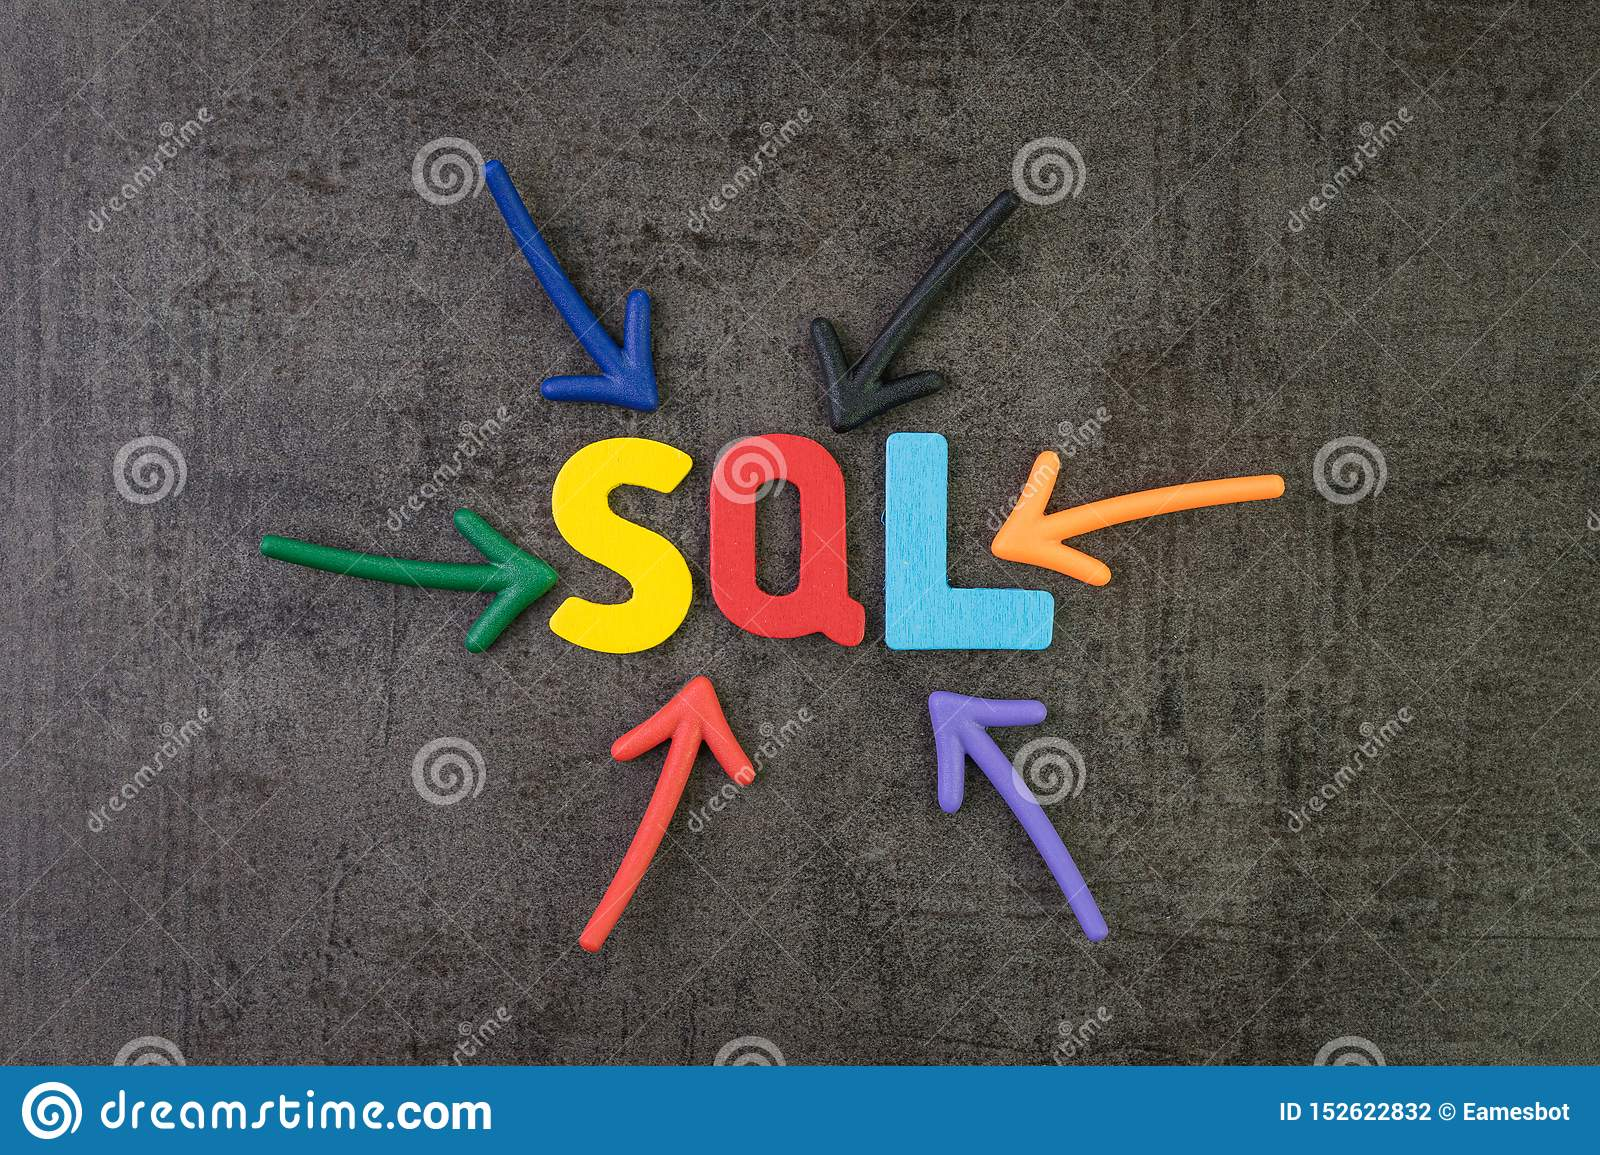 Sql Modern Programming Language For Database In Software